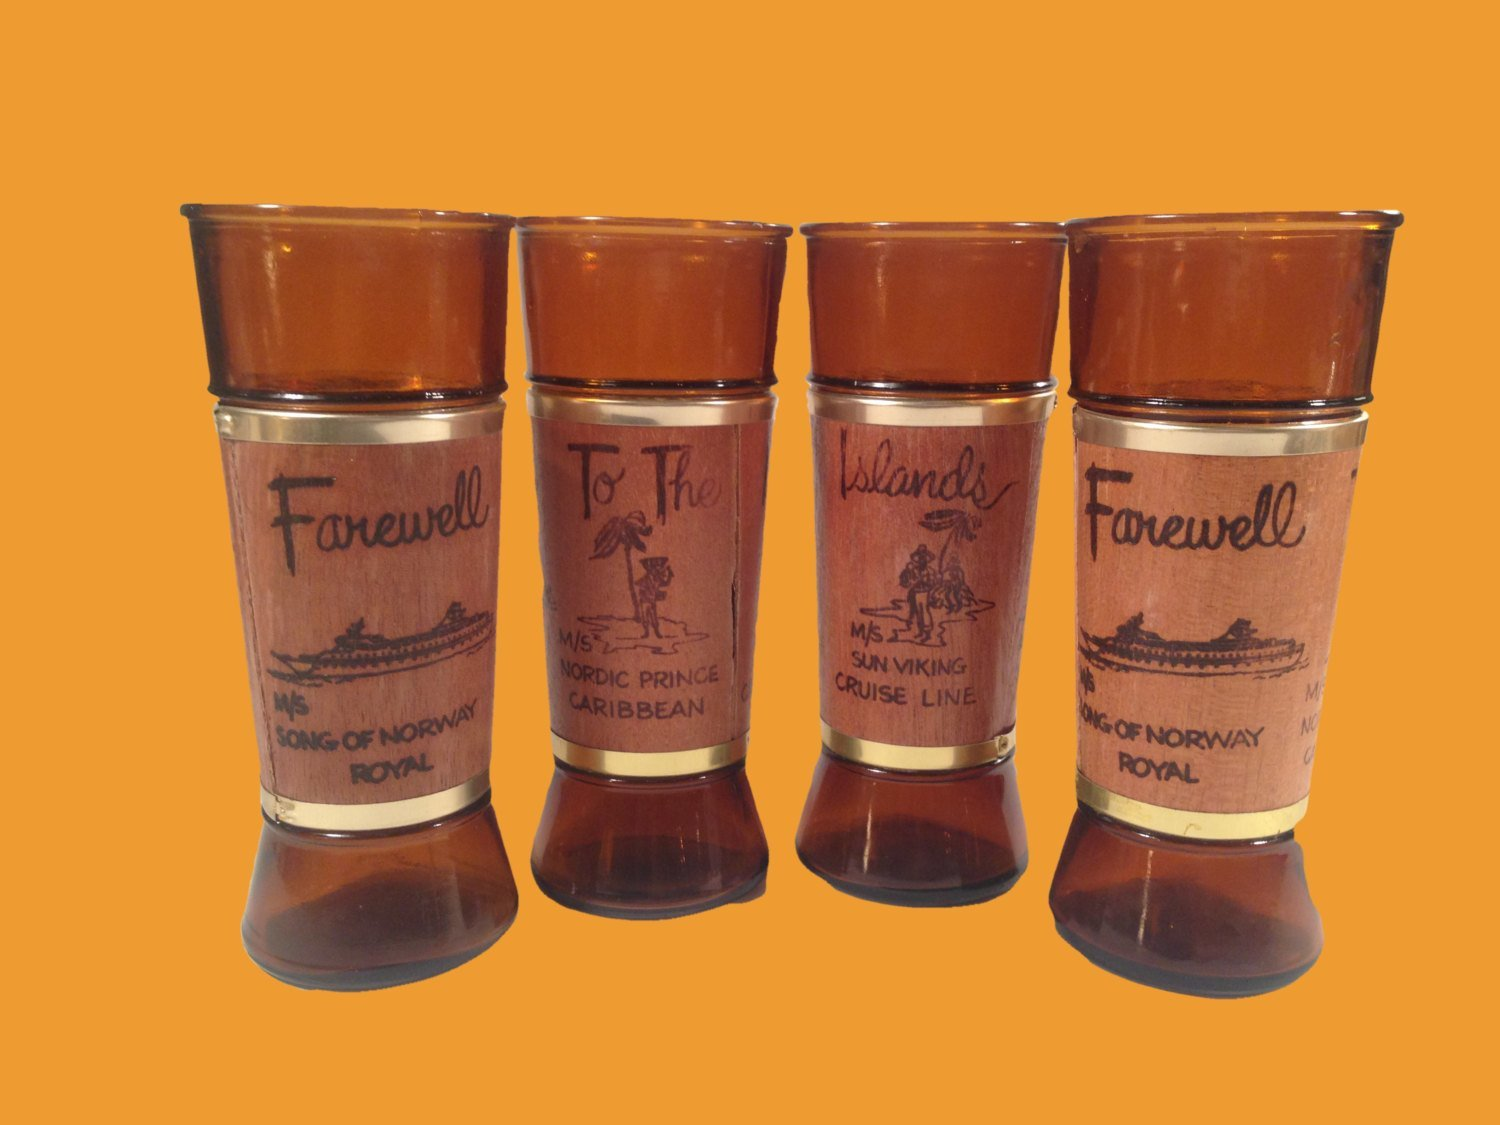 Tiki Style Glasses Siesta Ware Cruise Ship Souvenir Farewell to the Islands Royal Caribbean Glasses set of 4